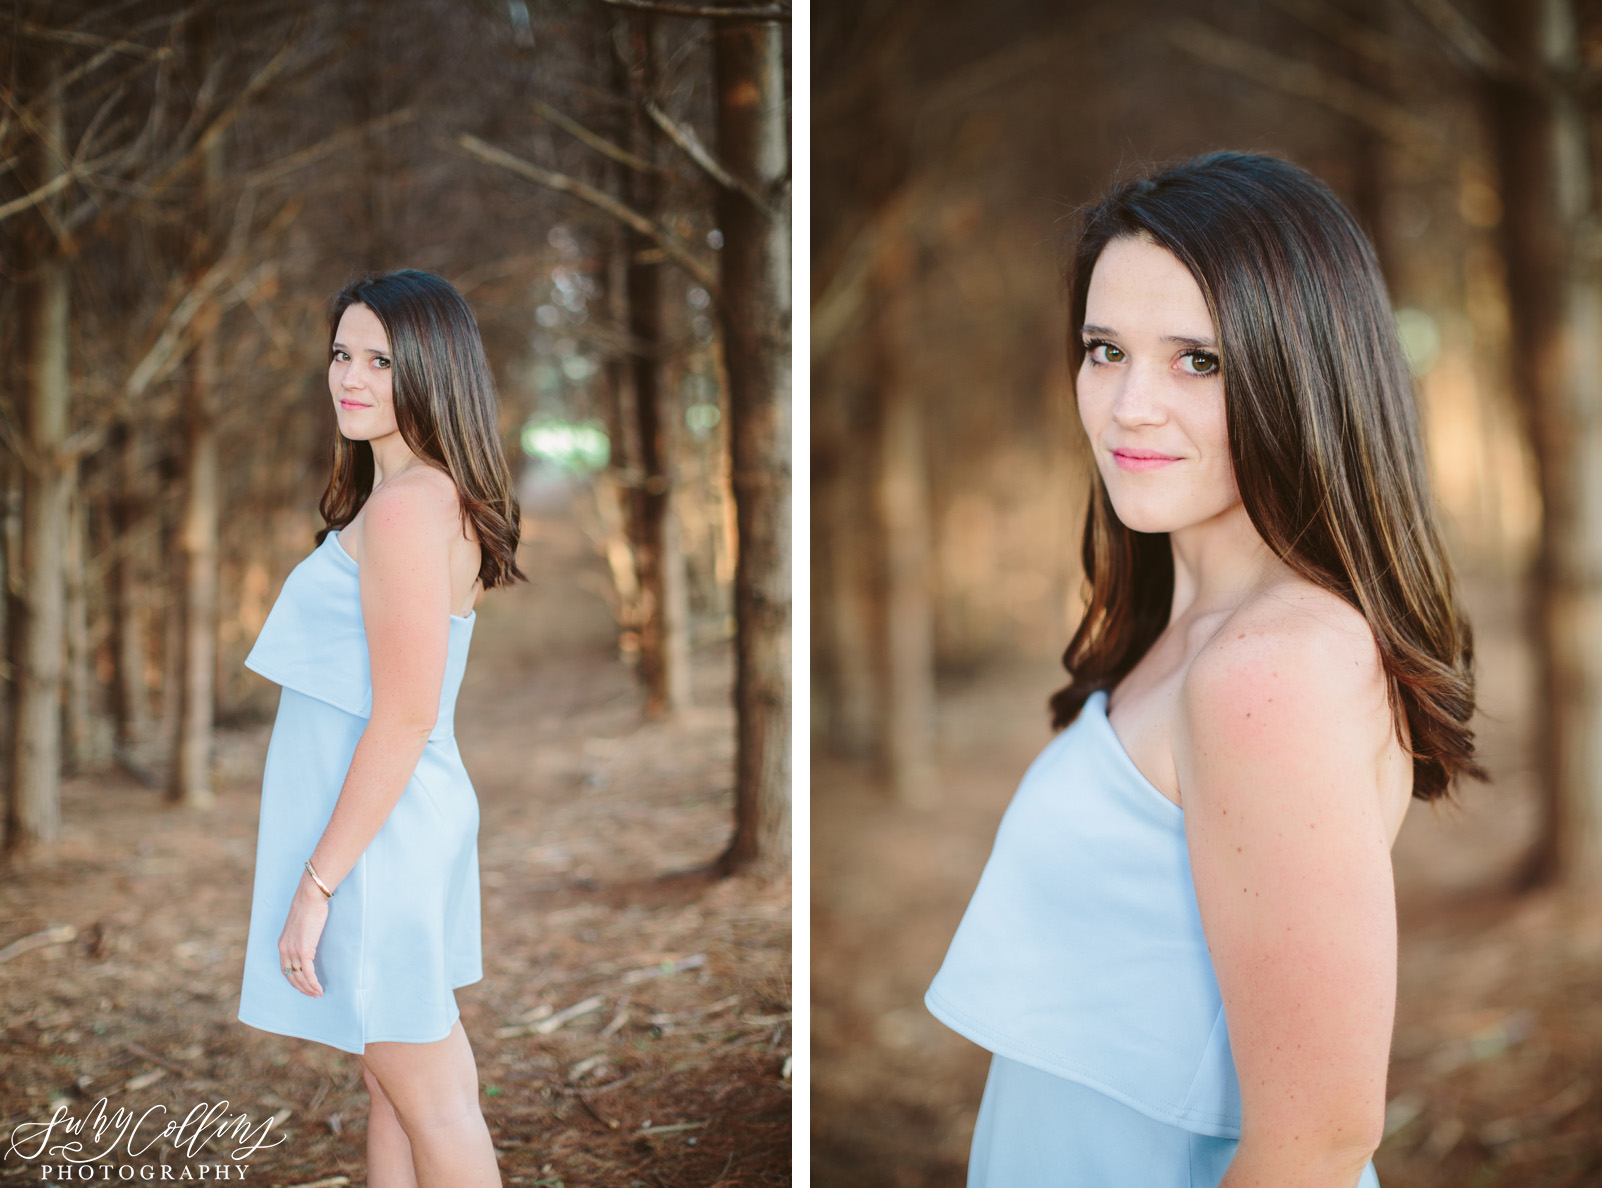 female, senior, portraits, graduate, Knoxville, poses, vineyard, outfits, ideas, college, inspiration, natural light, light and airy, vibrant, colorful, bright, outdoors, head shots, sunset, field, friends, photoshoot, woods